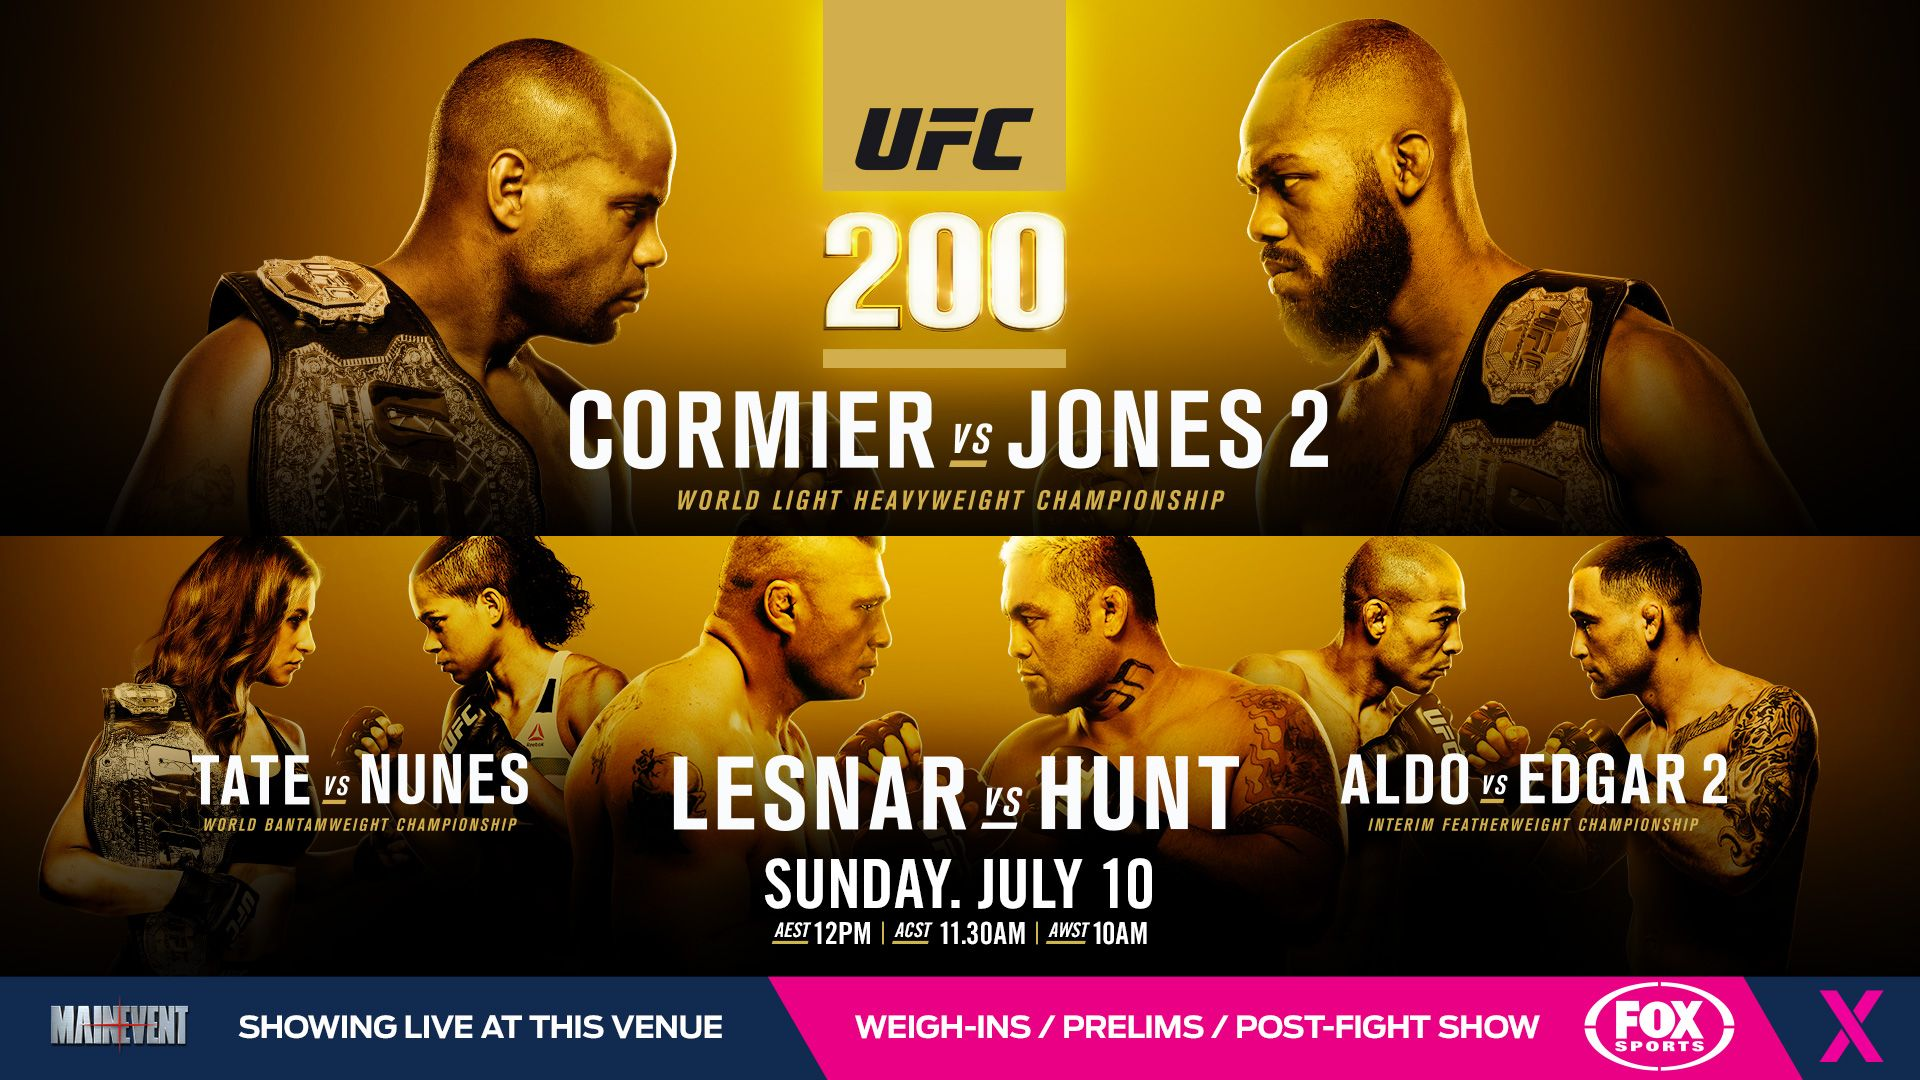 Wallpaper for UFC 200 MMA Wallpapers Pinterest UFC and MMA 1920x1080